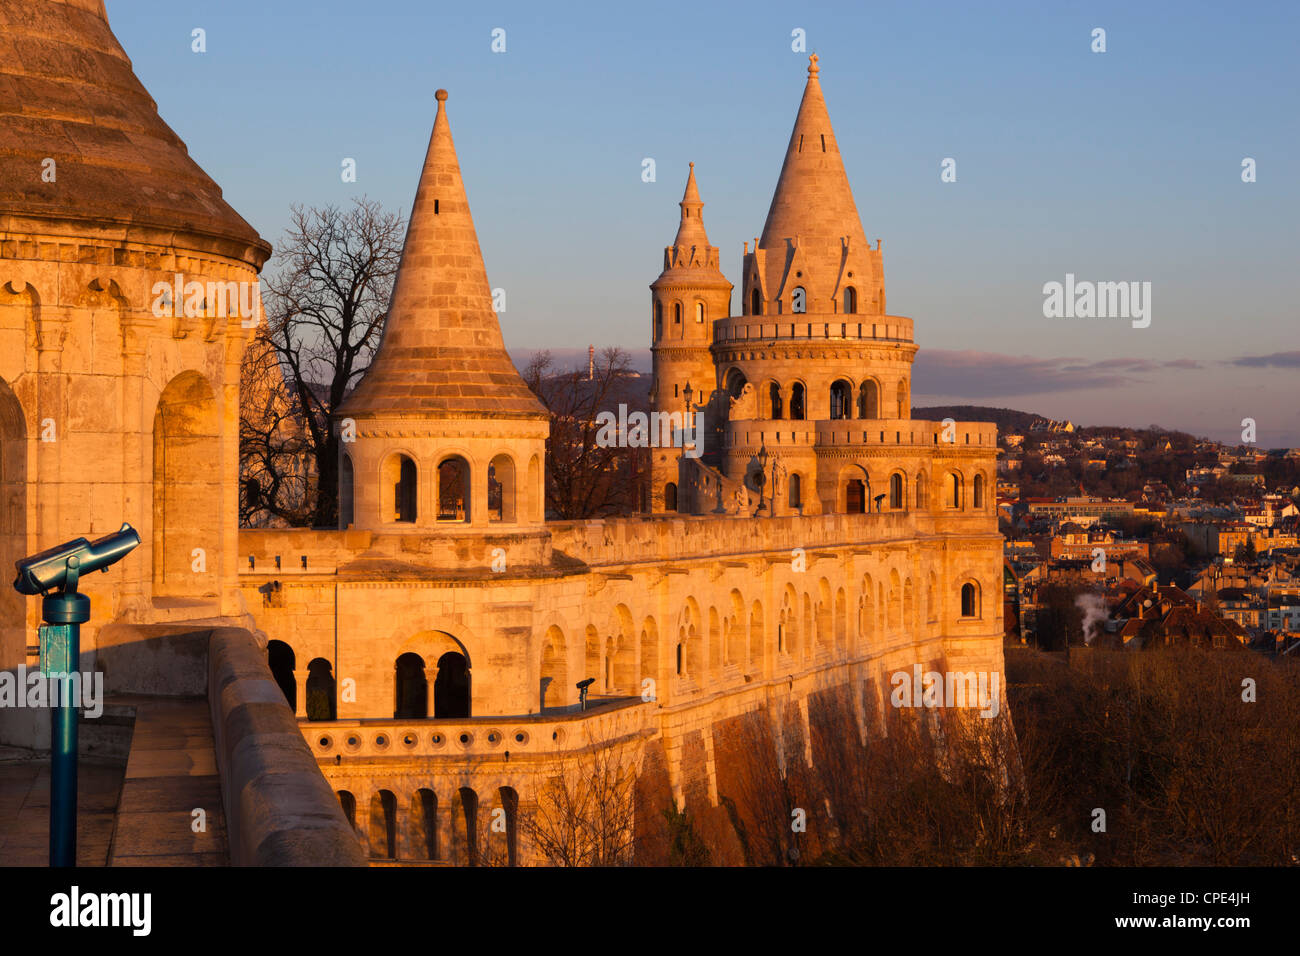 Turrets of Fishermen's Bastion (Halaszbastya) at dawn, Buda, Budapest, Hungary, Europe - Stock Image